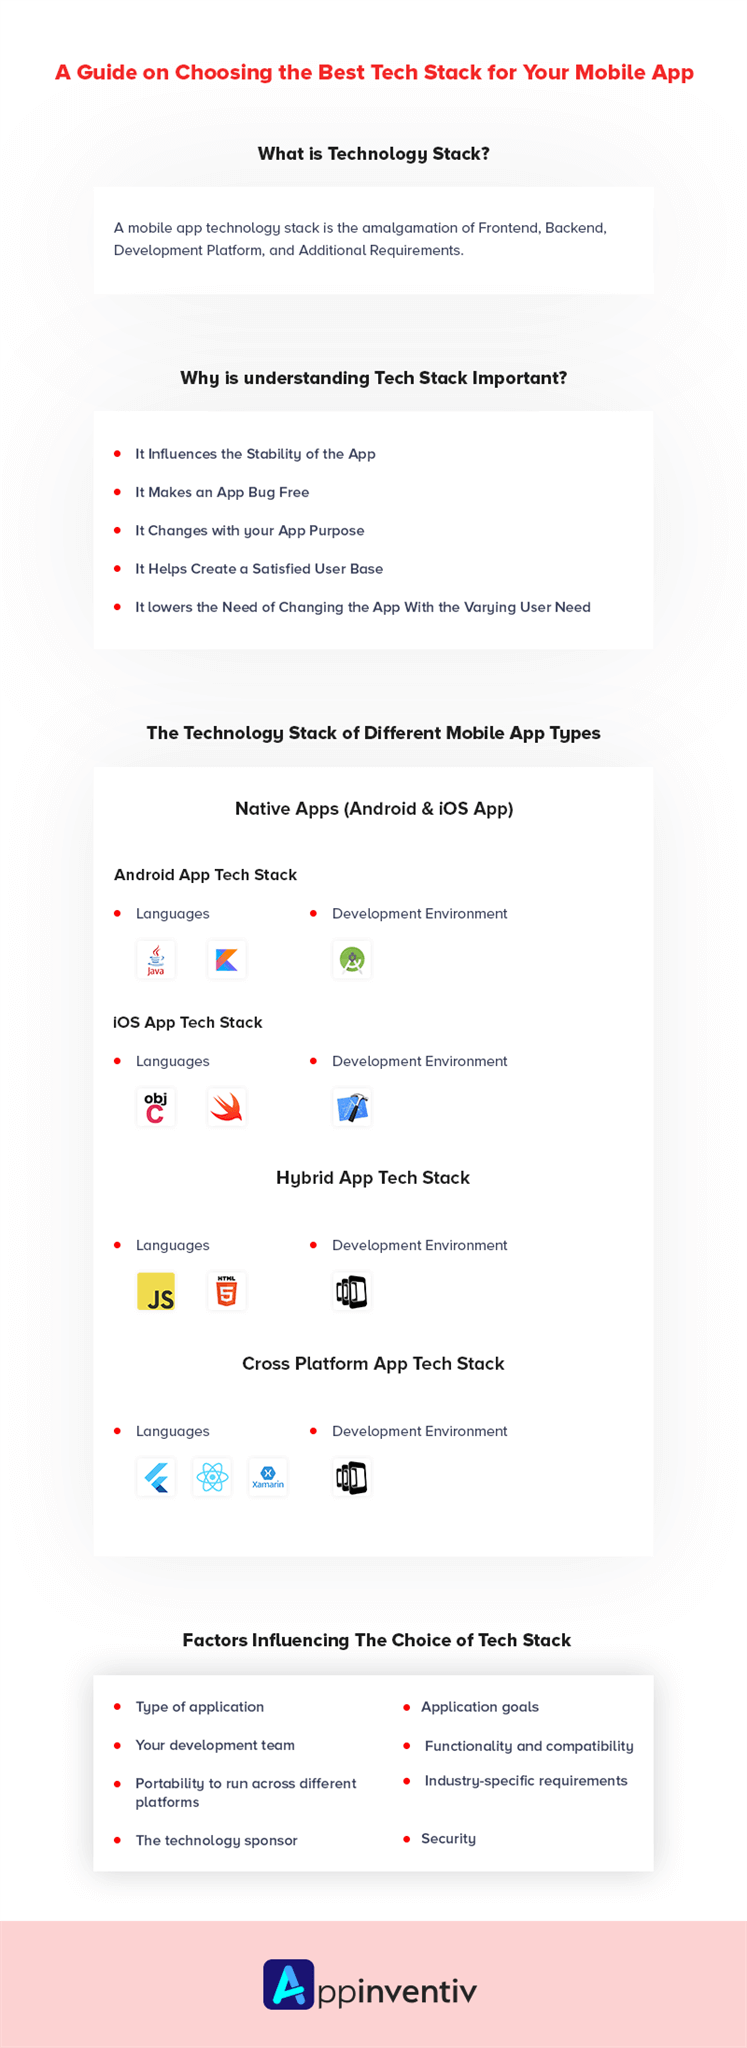 How to Choose the Best Technology Stack for Mobile App